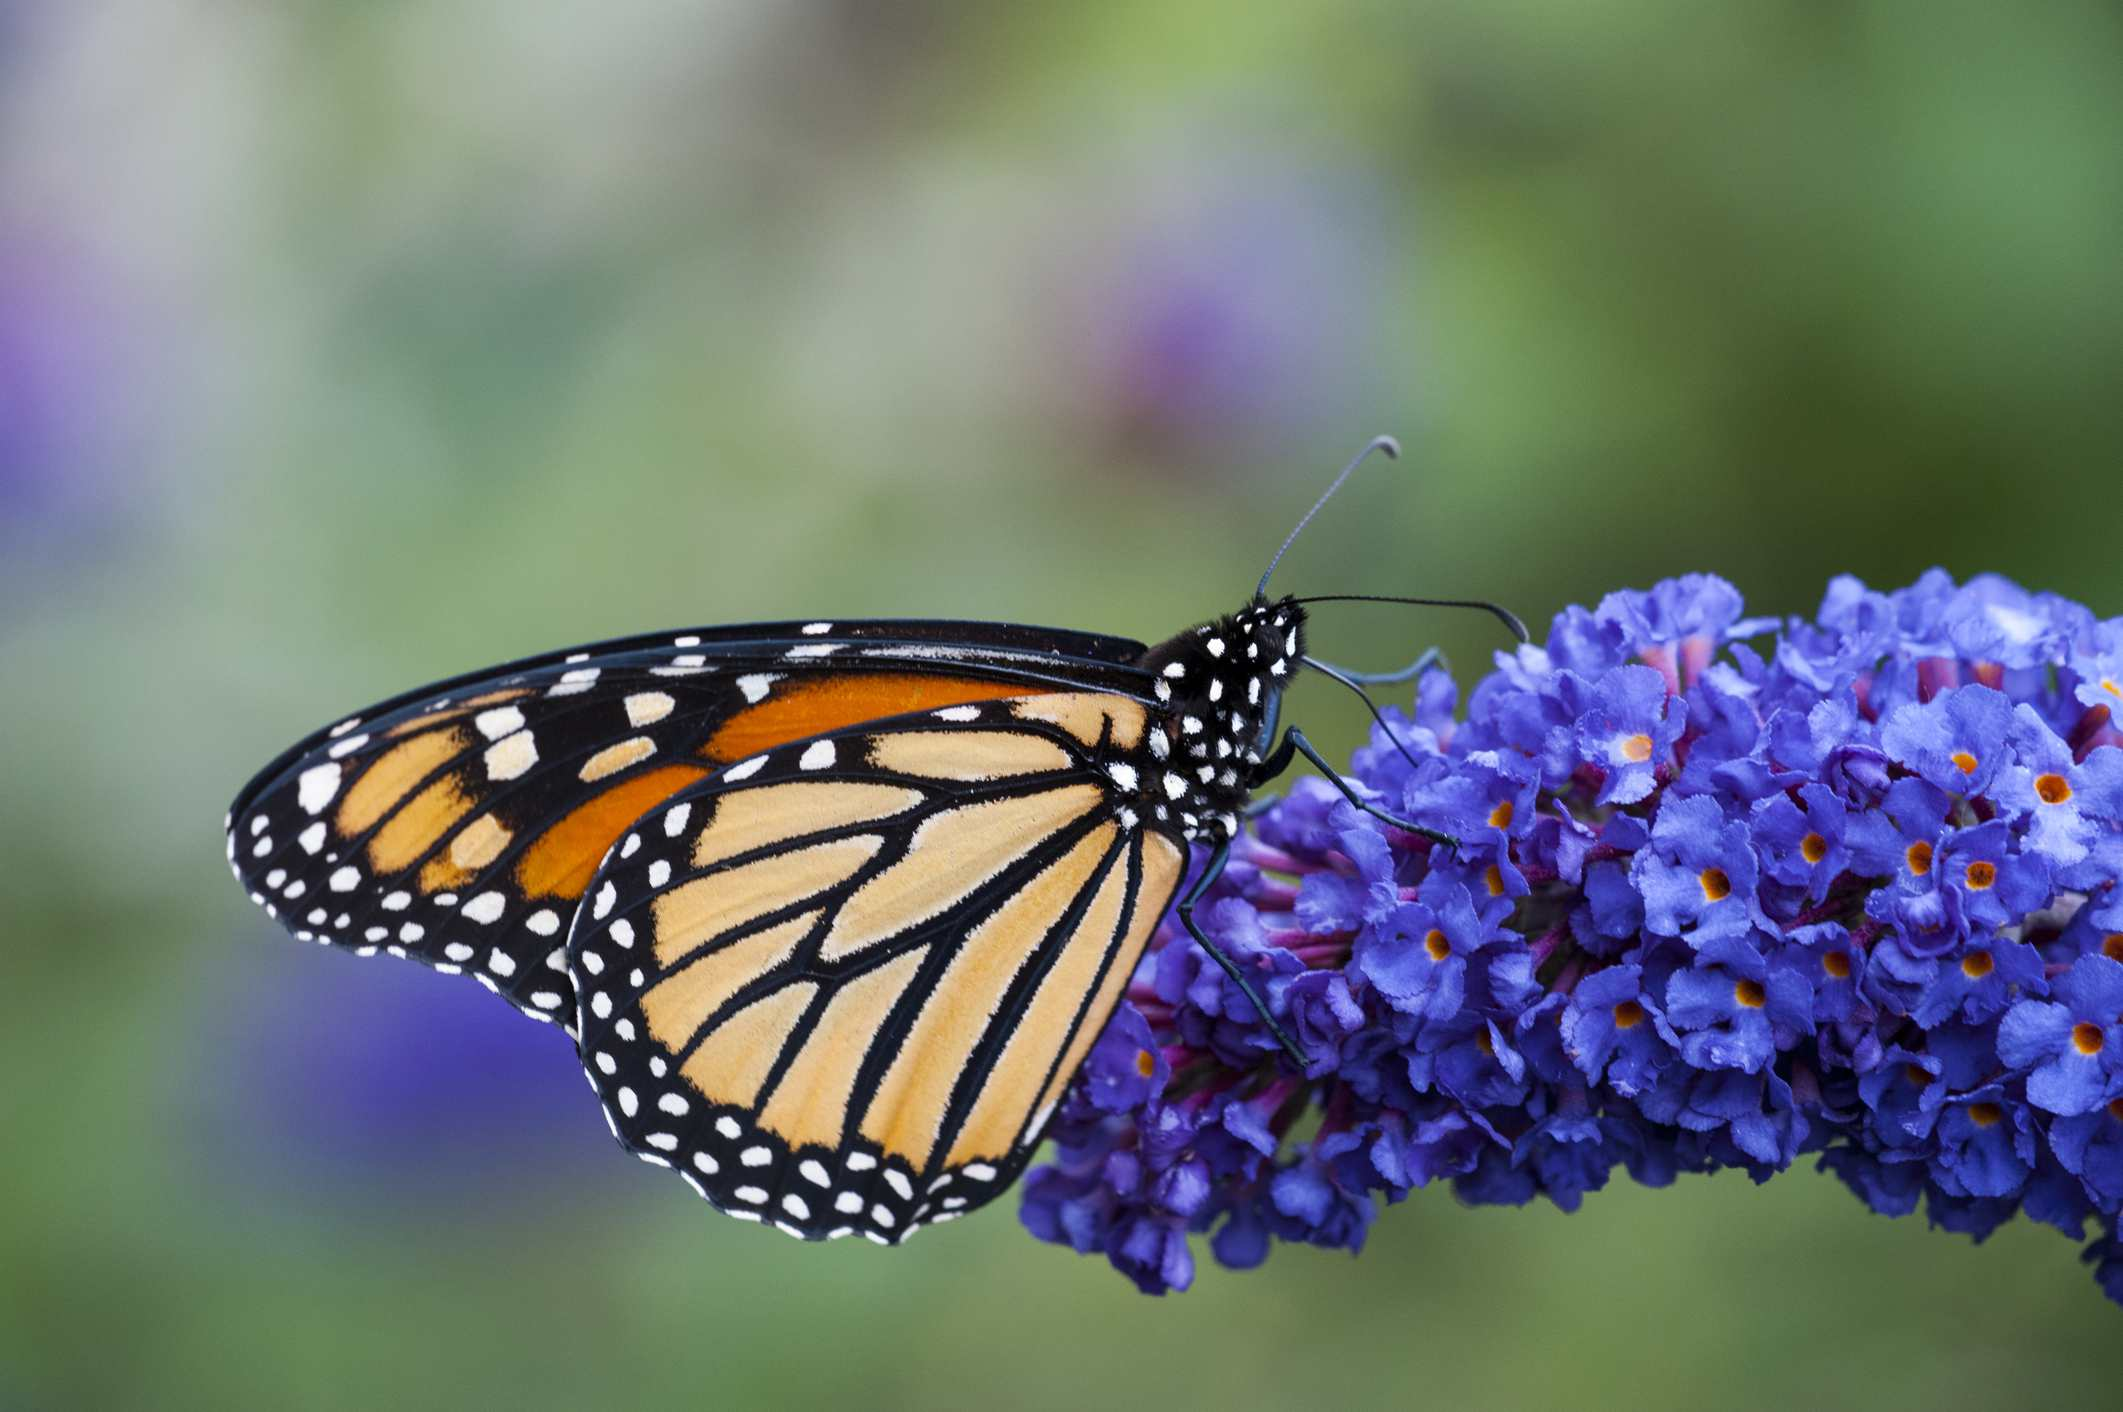 Monarch butterfly on blue Buddleia shrub.